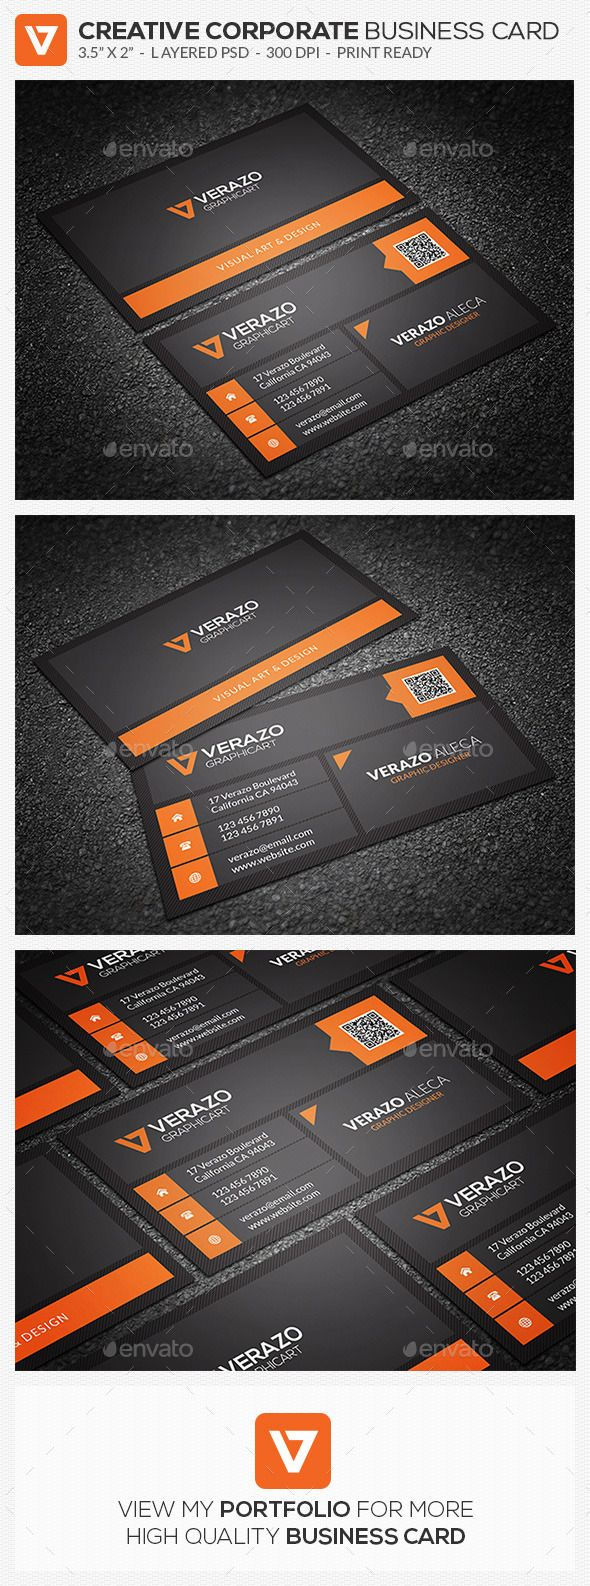 Creative Metro Style Business Card Template | #businesscard #businesscardtemplate | Download: http://graphicriver.net/item/creative-metro-style-business-card-74/10309686?ref=ksioks